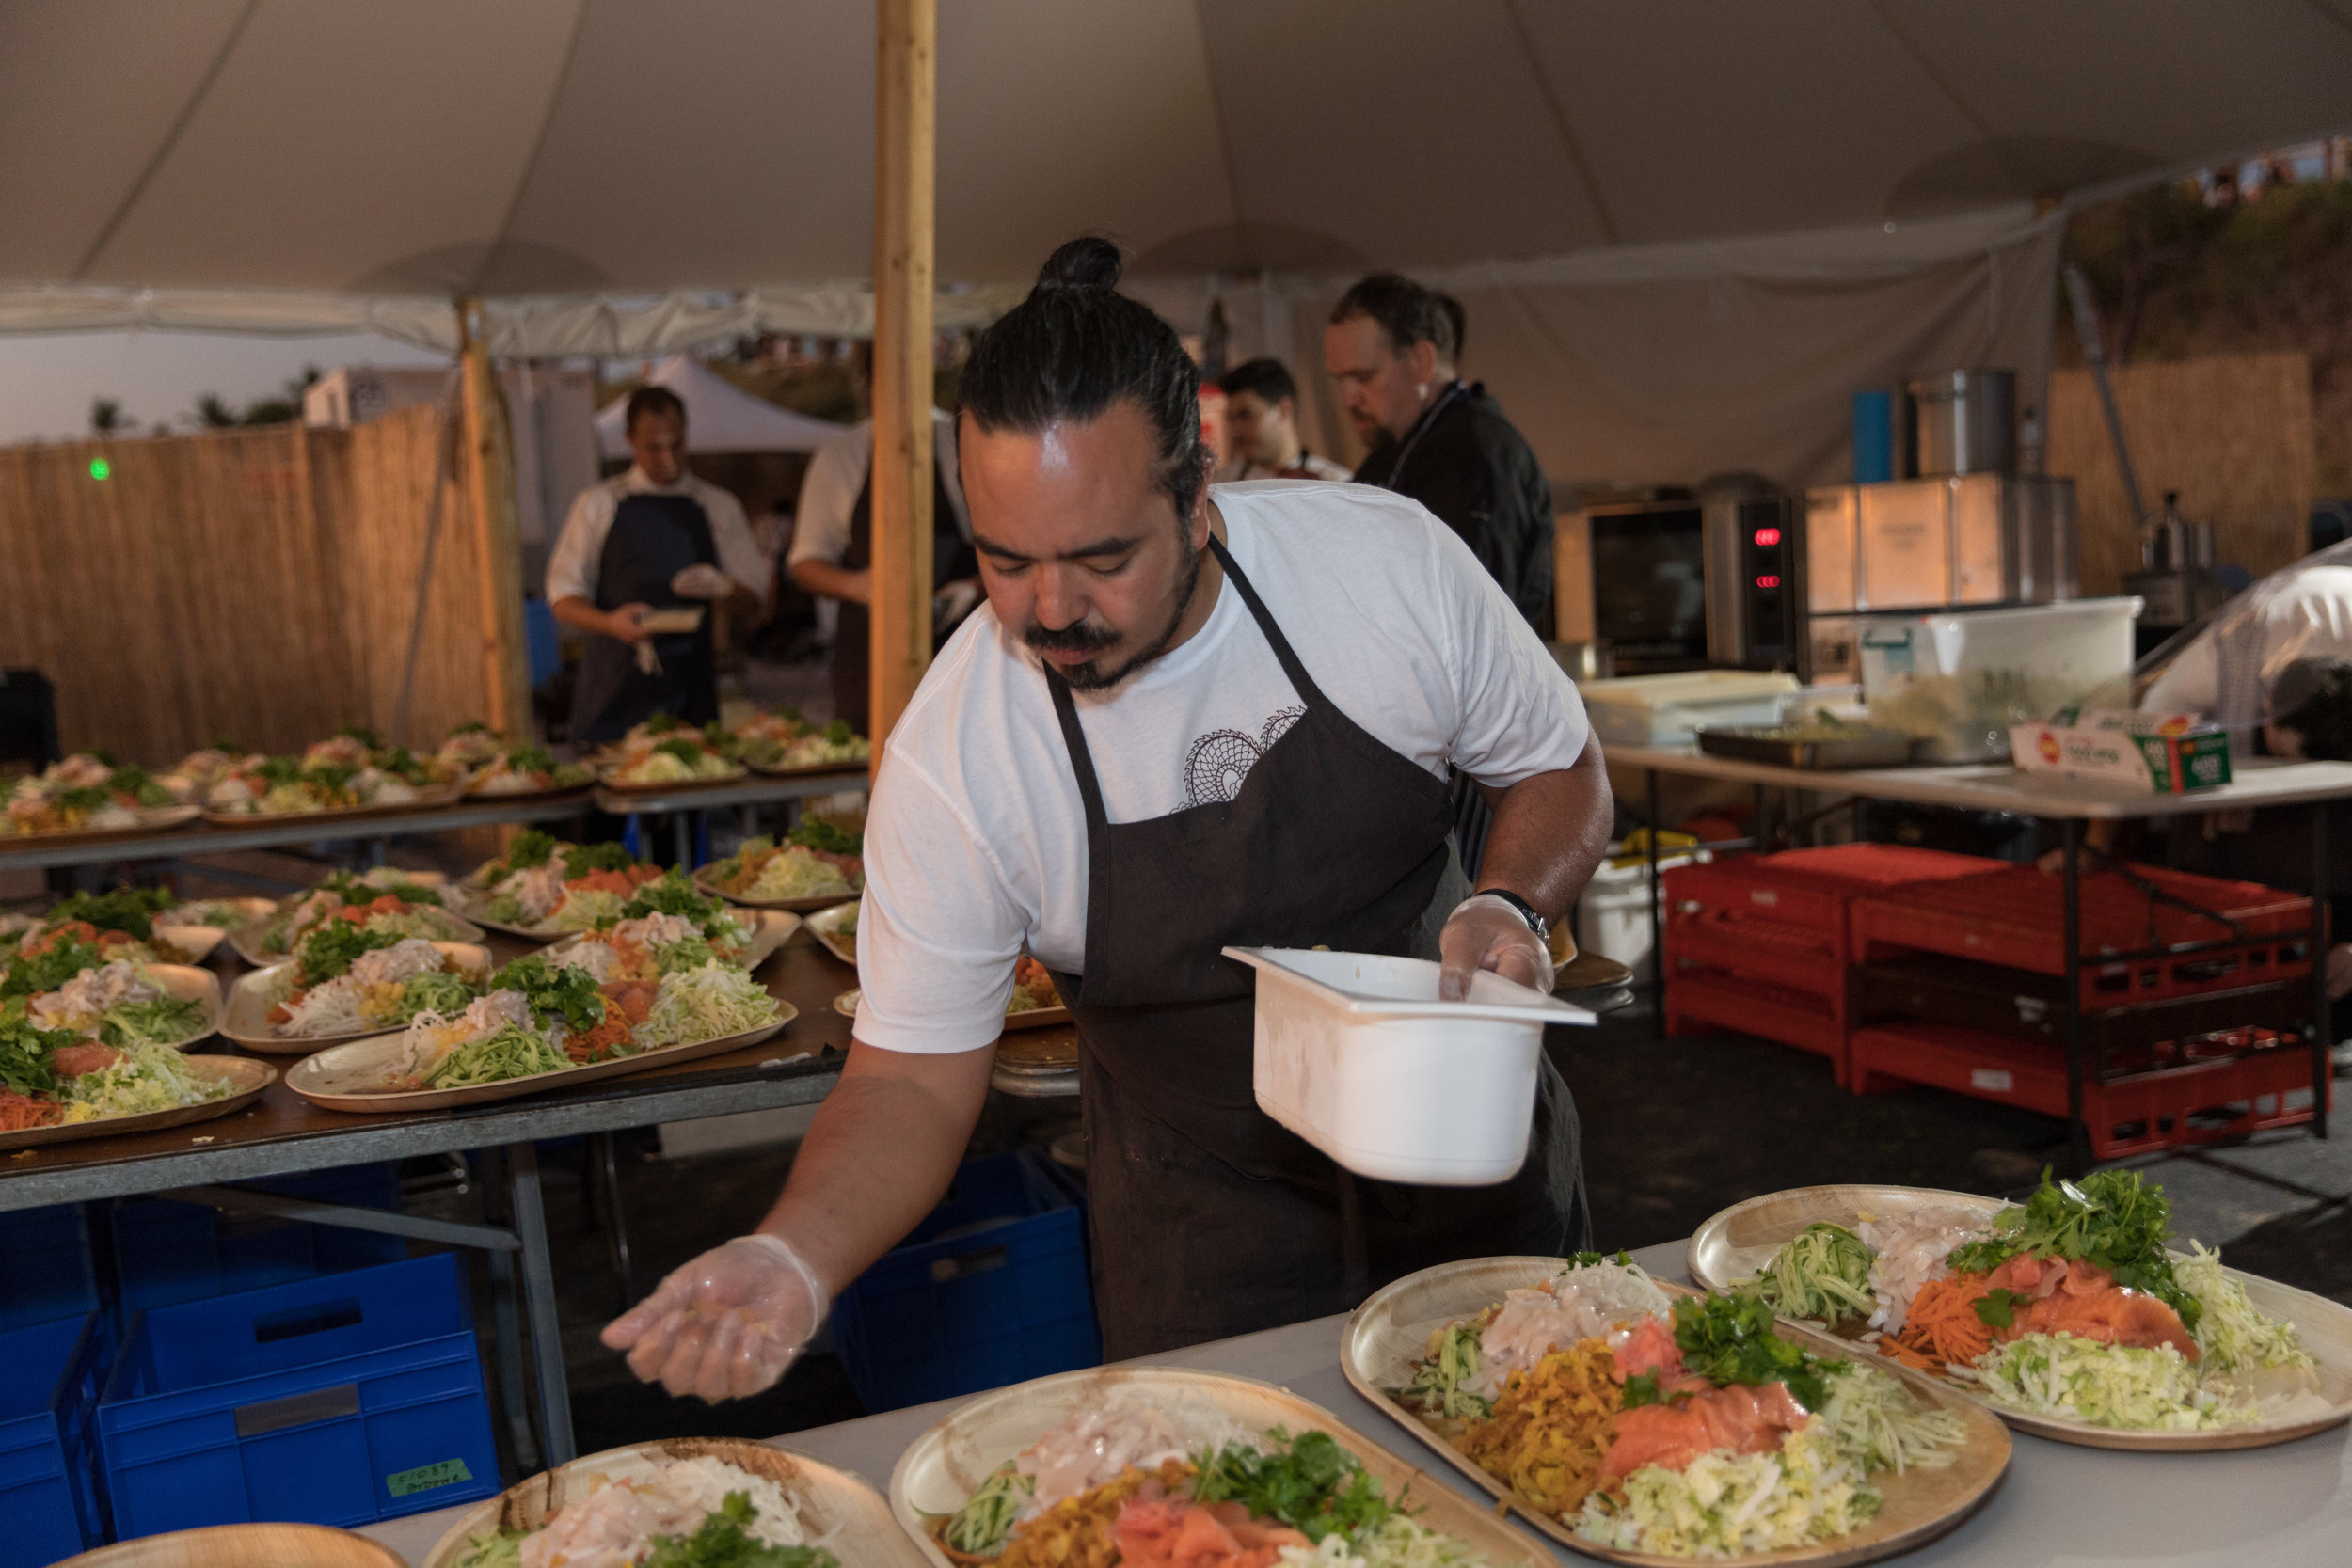 Guest chef Adam Liaw prepares a course at the Sunset Long Table Dinner. Photo: Pamela Jennings